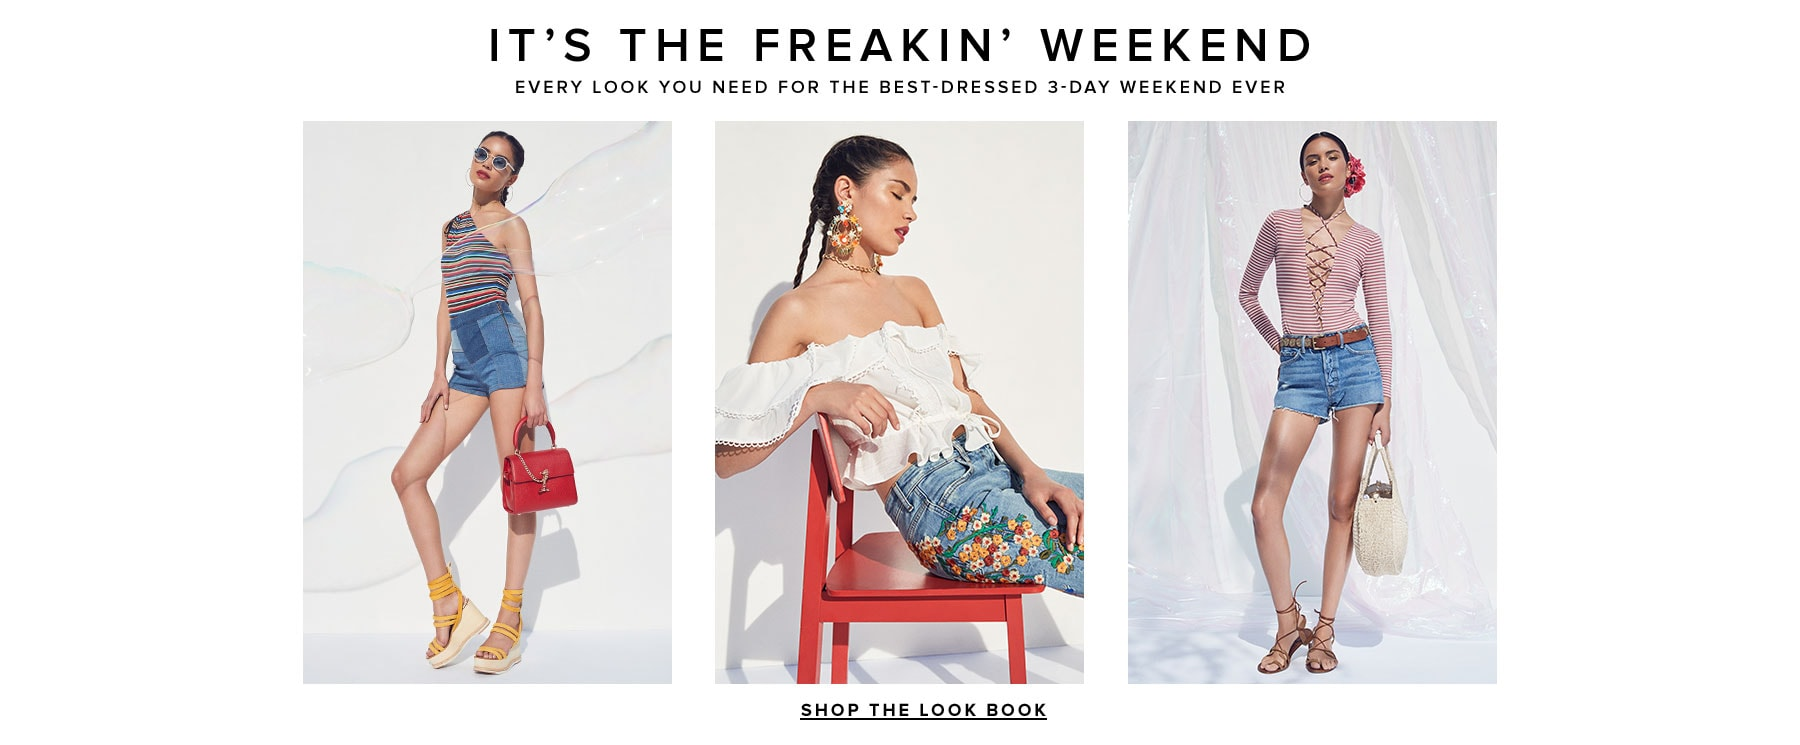 It's the Freakin' Weekend. Every look you need for the best-dressed 3-day weekend ever. Shop the Edit.